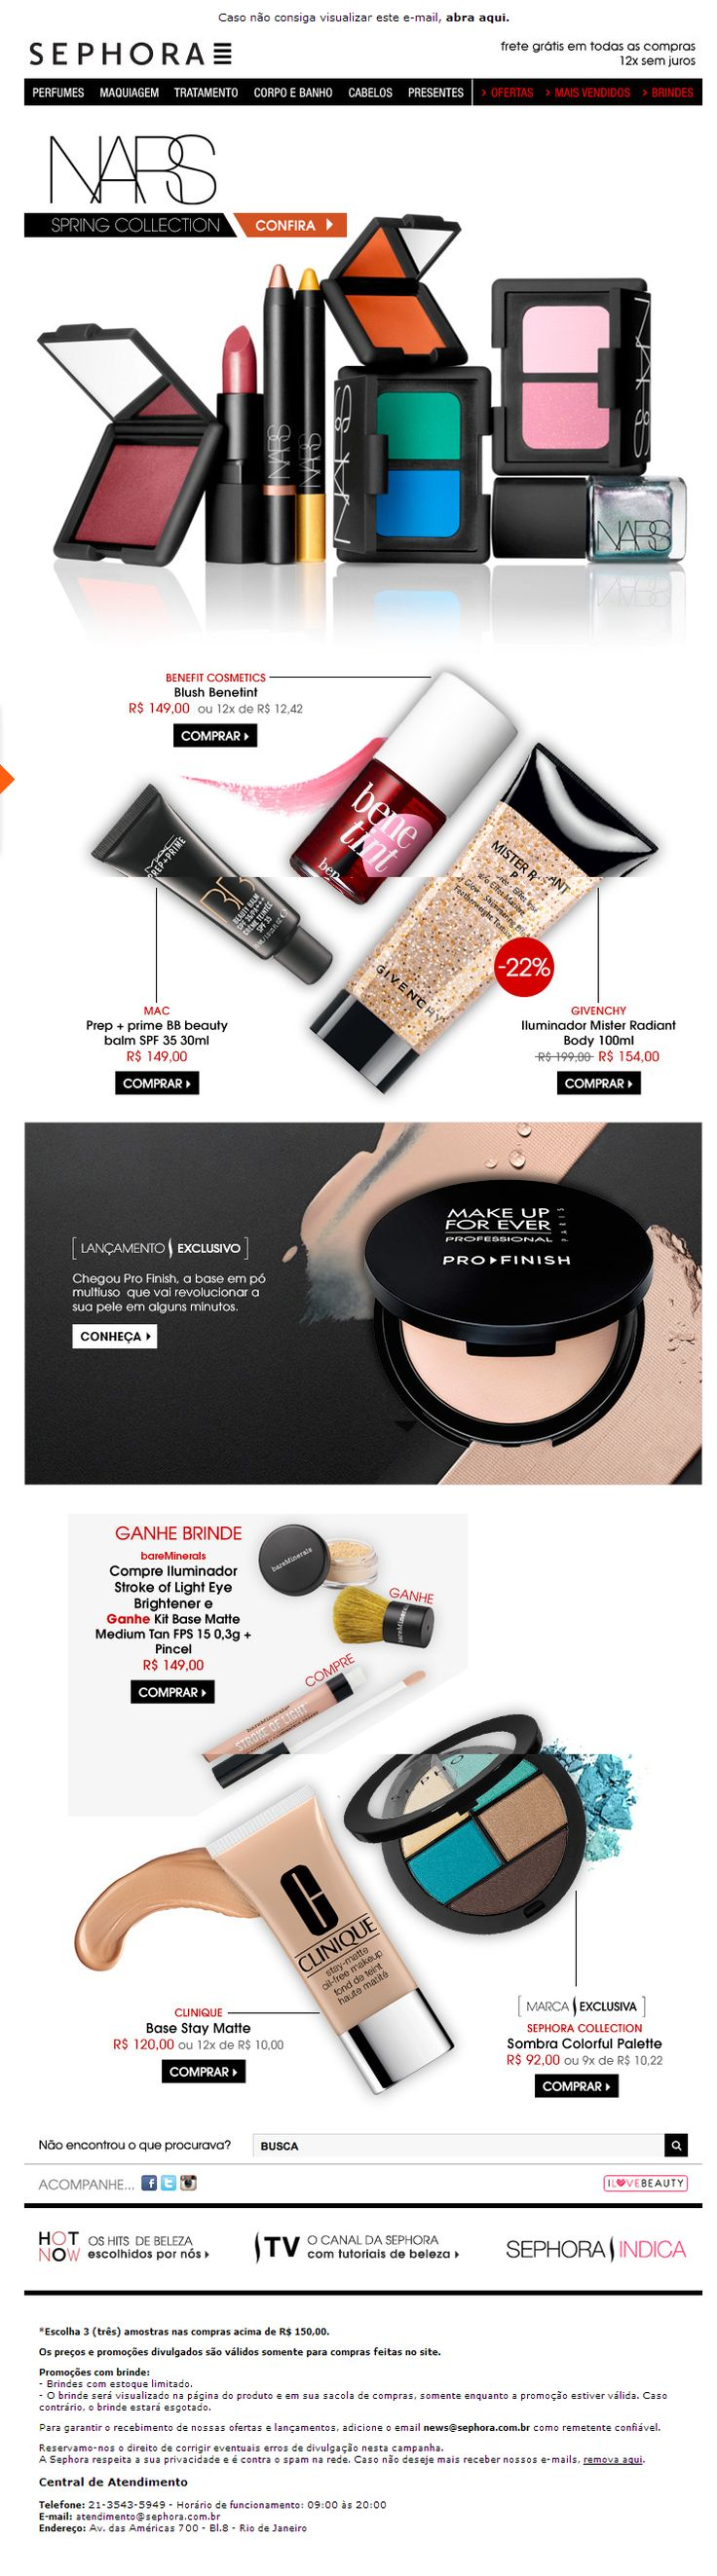 Have noticed Sephora does great EDM. Cutting it up, great usage of bold and fonts, and easy to understand concept.